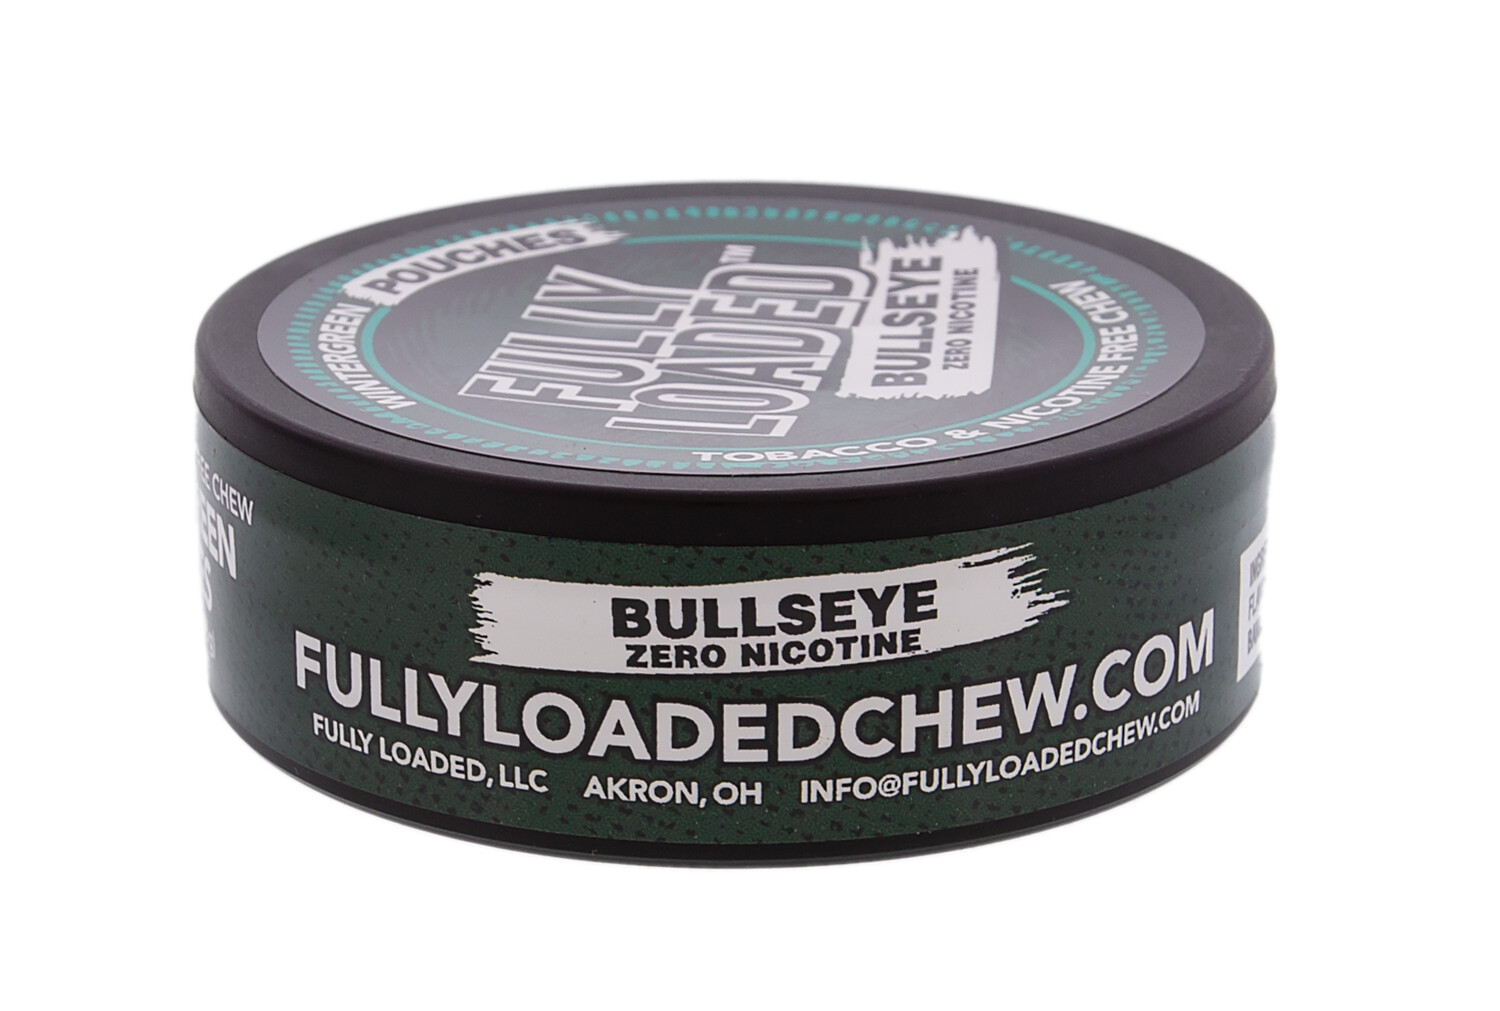 Fully Loaded Chew Tobacco and Nicotine Free Wintergreen Bullseye Pouches Refreshing Flavor, Chewing Alternative